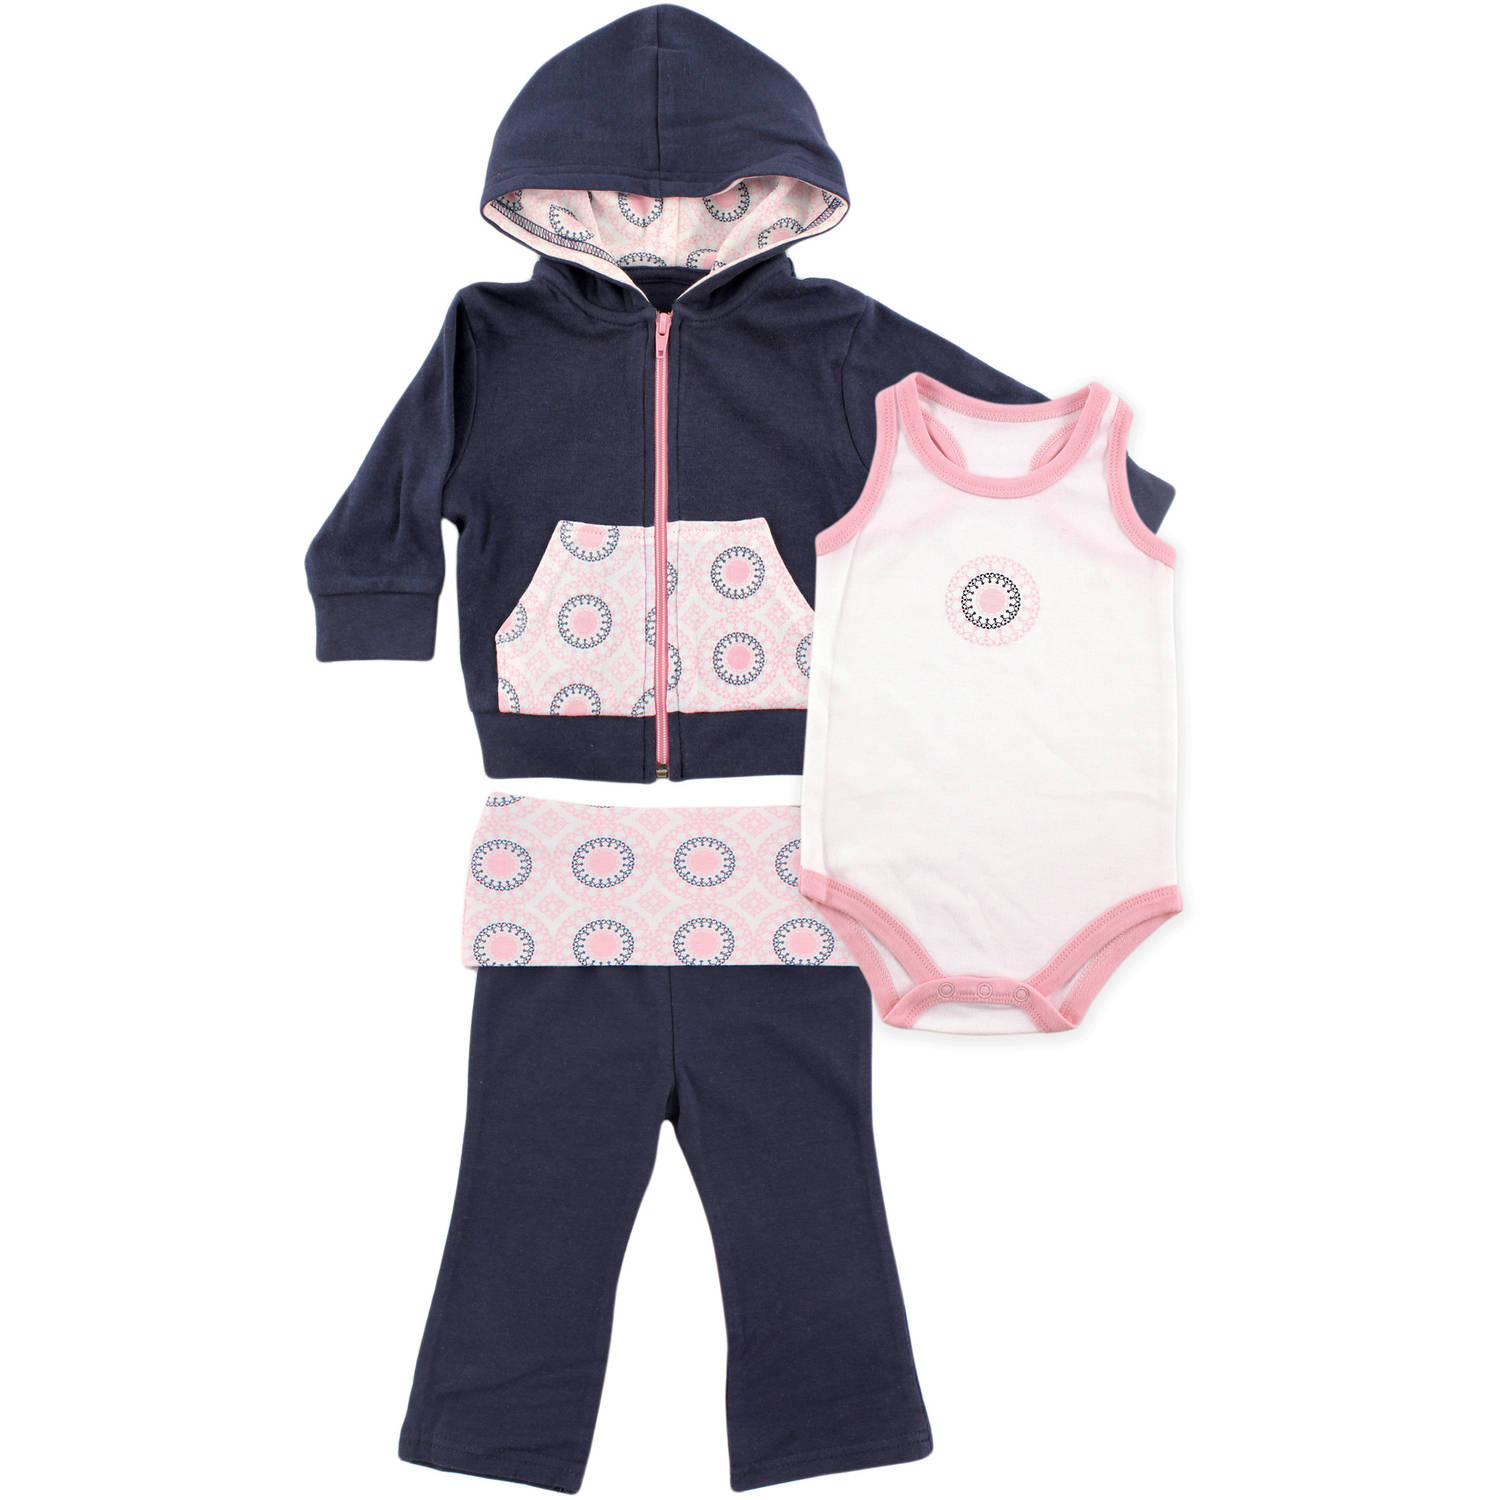 Yoga Sprout Newborn Baby Girls Hoodie, Racerback Bodysuit & Yoga Pant Set - Ornamental